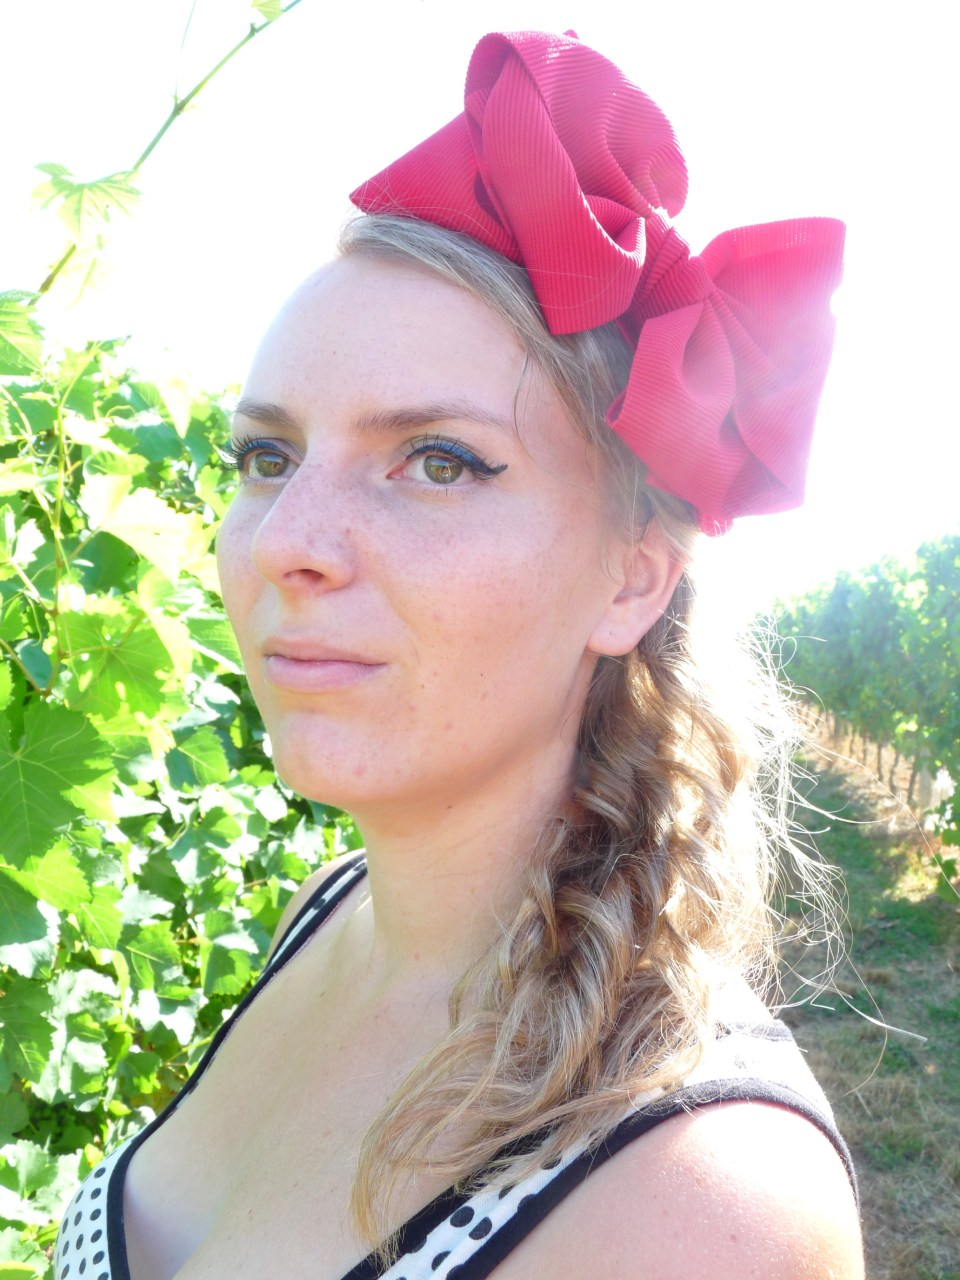 Gers, vin, vignoble, vigne, fashion, ruban rouge, serre tete, headband, noeud,sac mango7